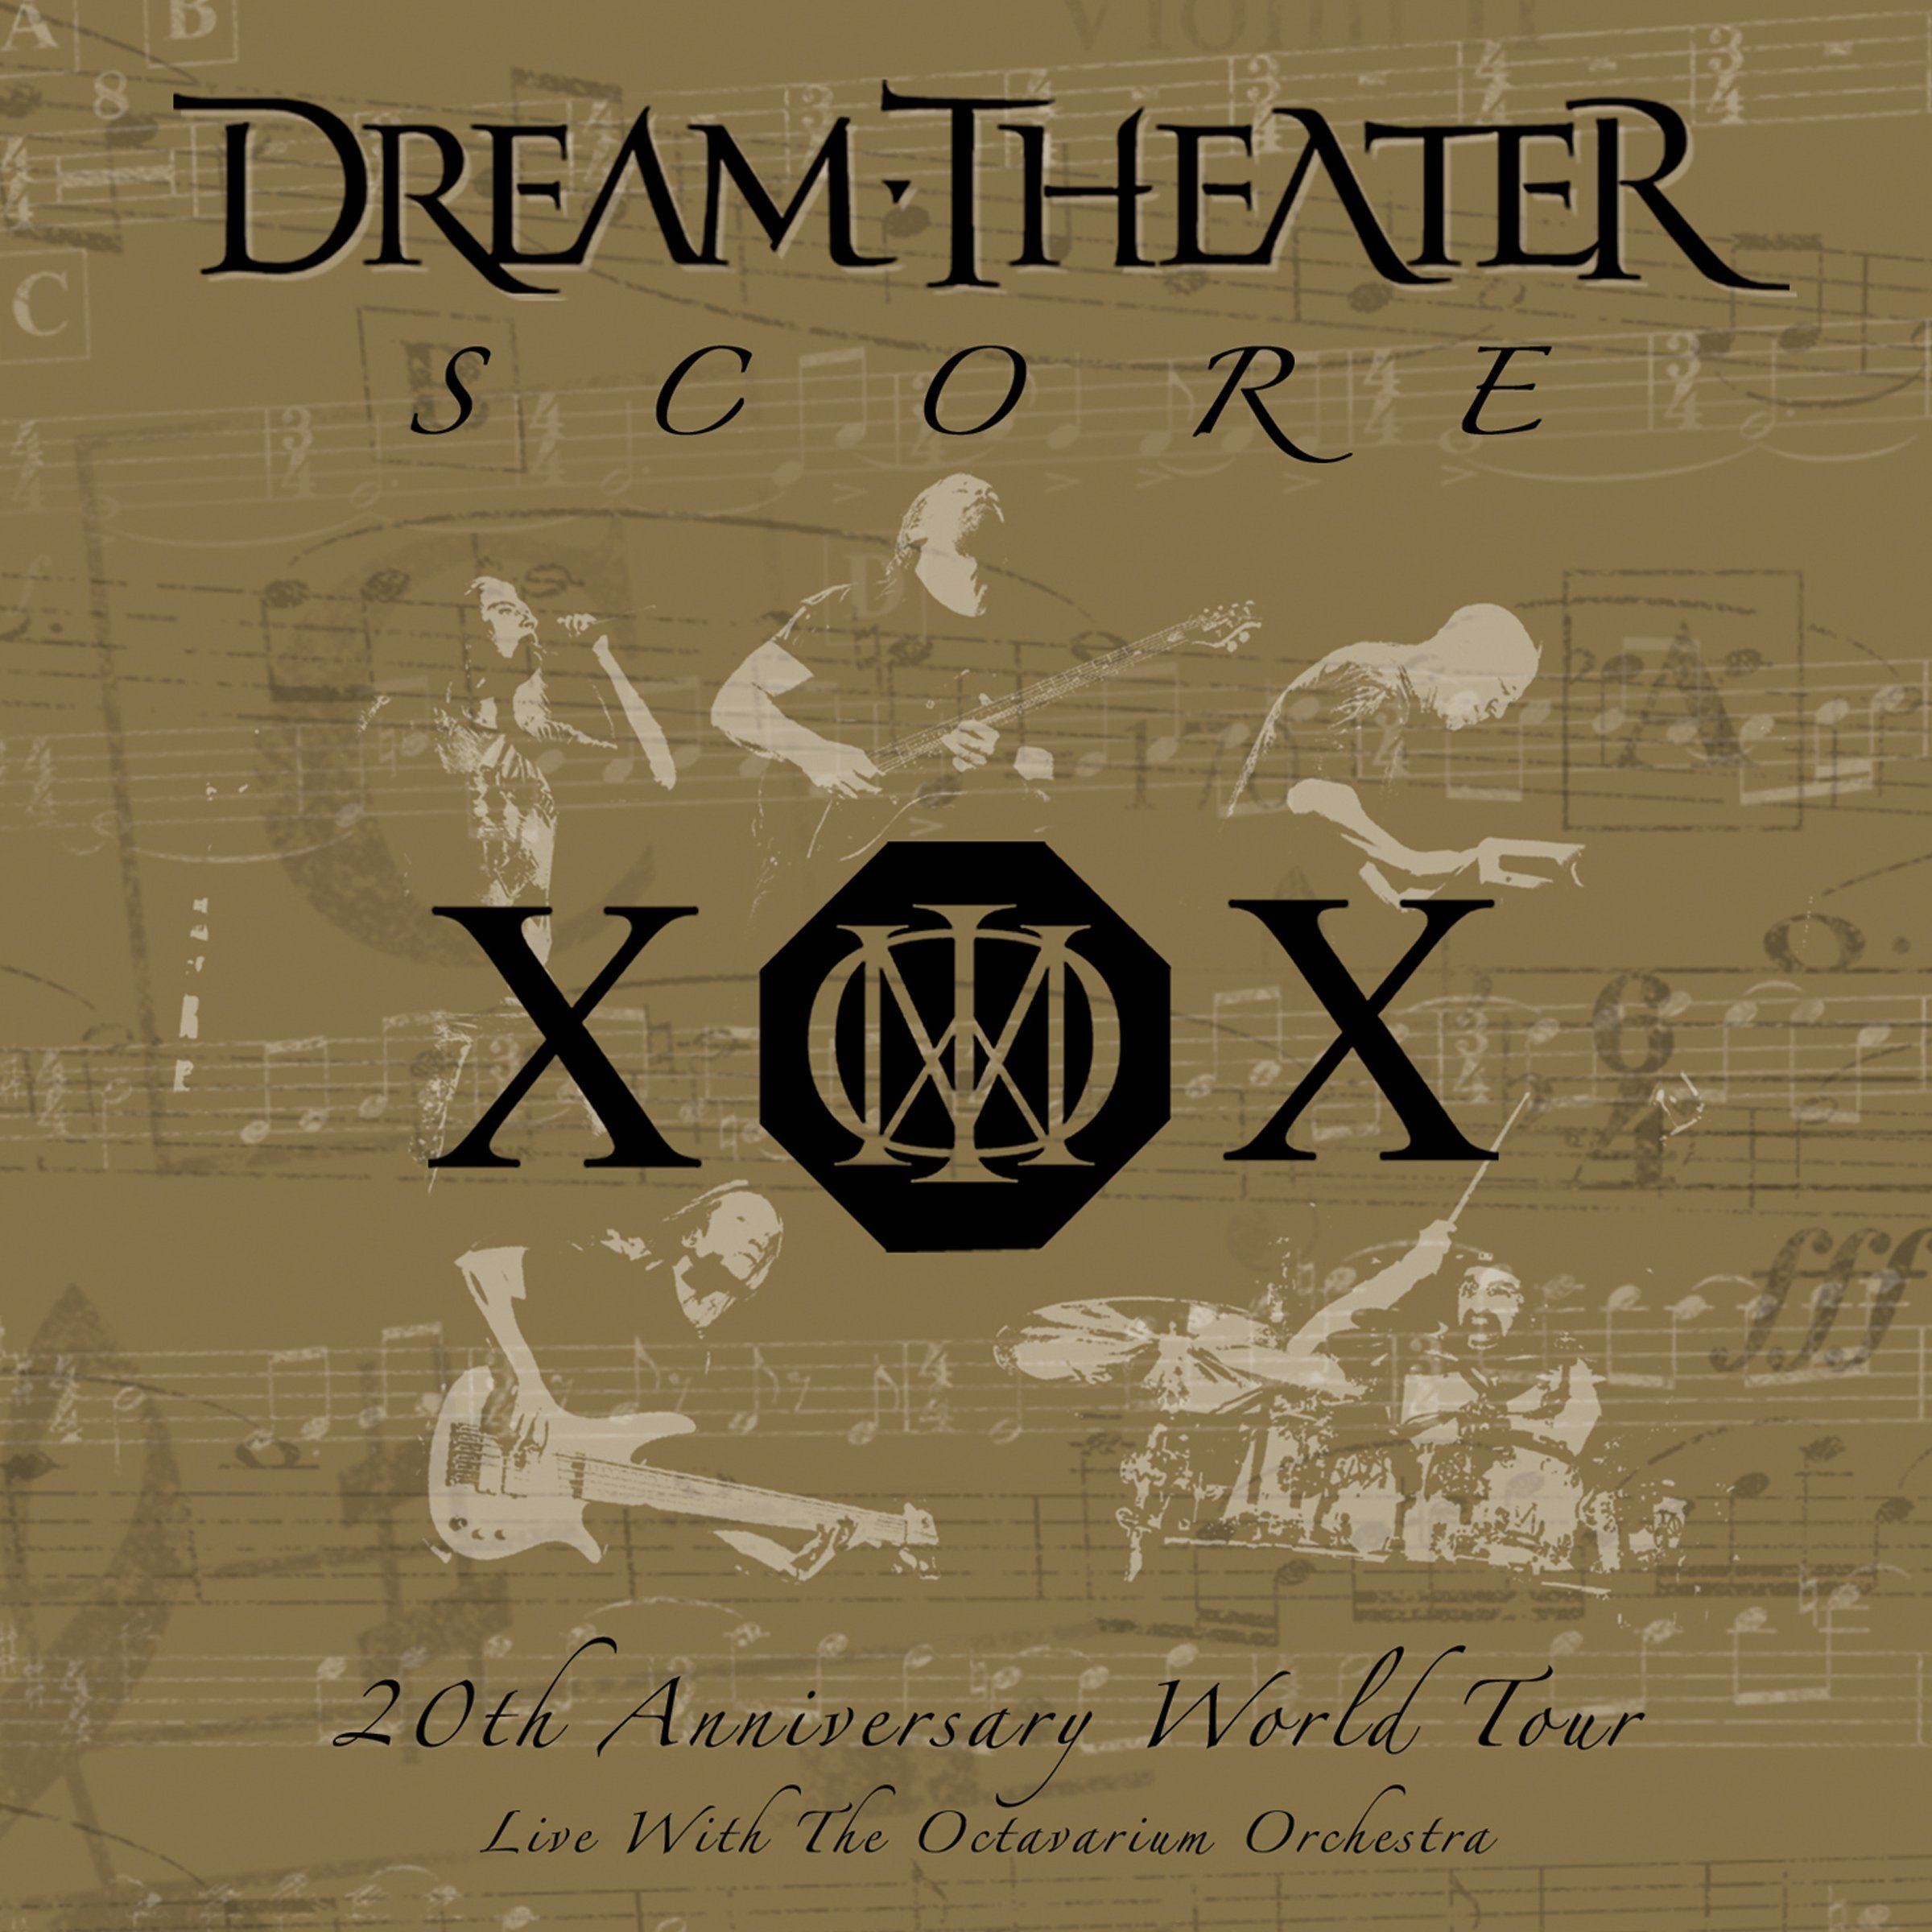 Score: 20th Anniversary World Tour - Live With The Octavarium Orchestra